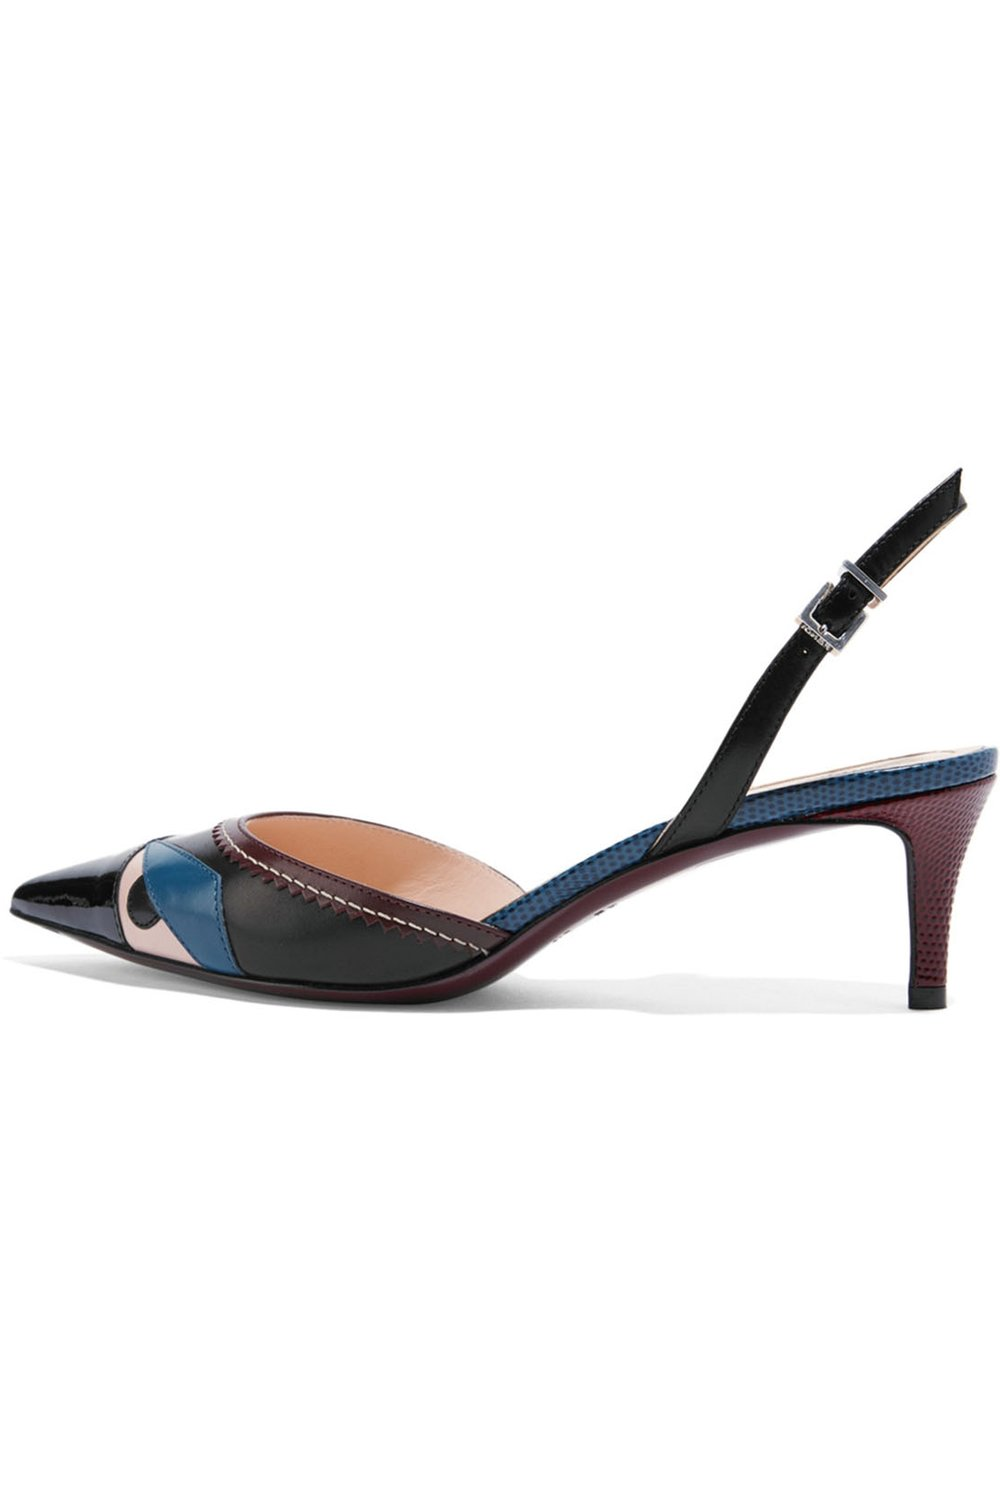 Bag Bug Appliquéd Leather Pumps by Fendi